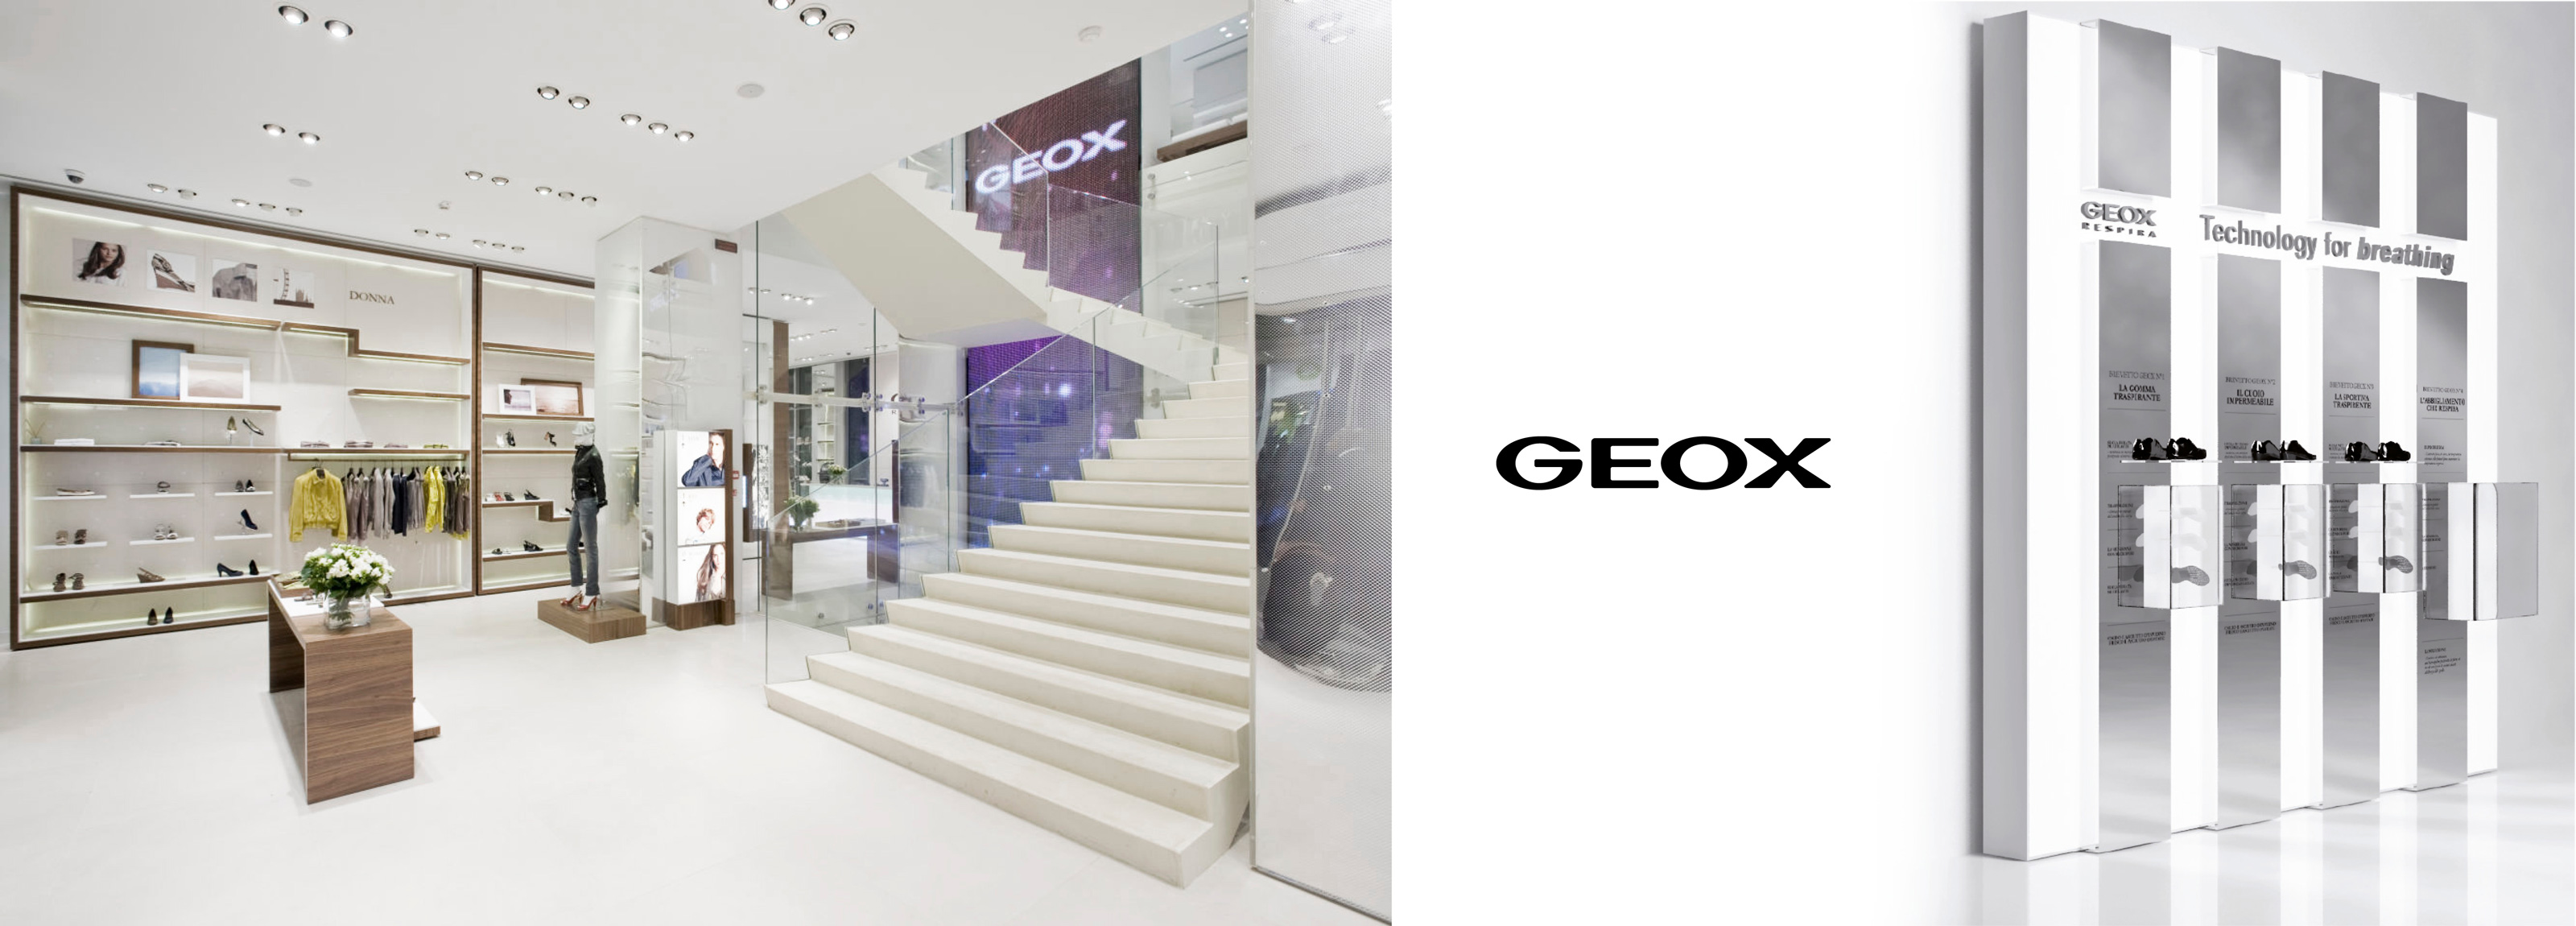 Geox - Geox <br> New interiors concept